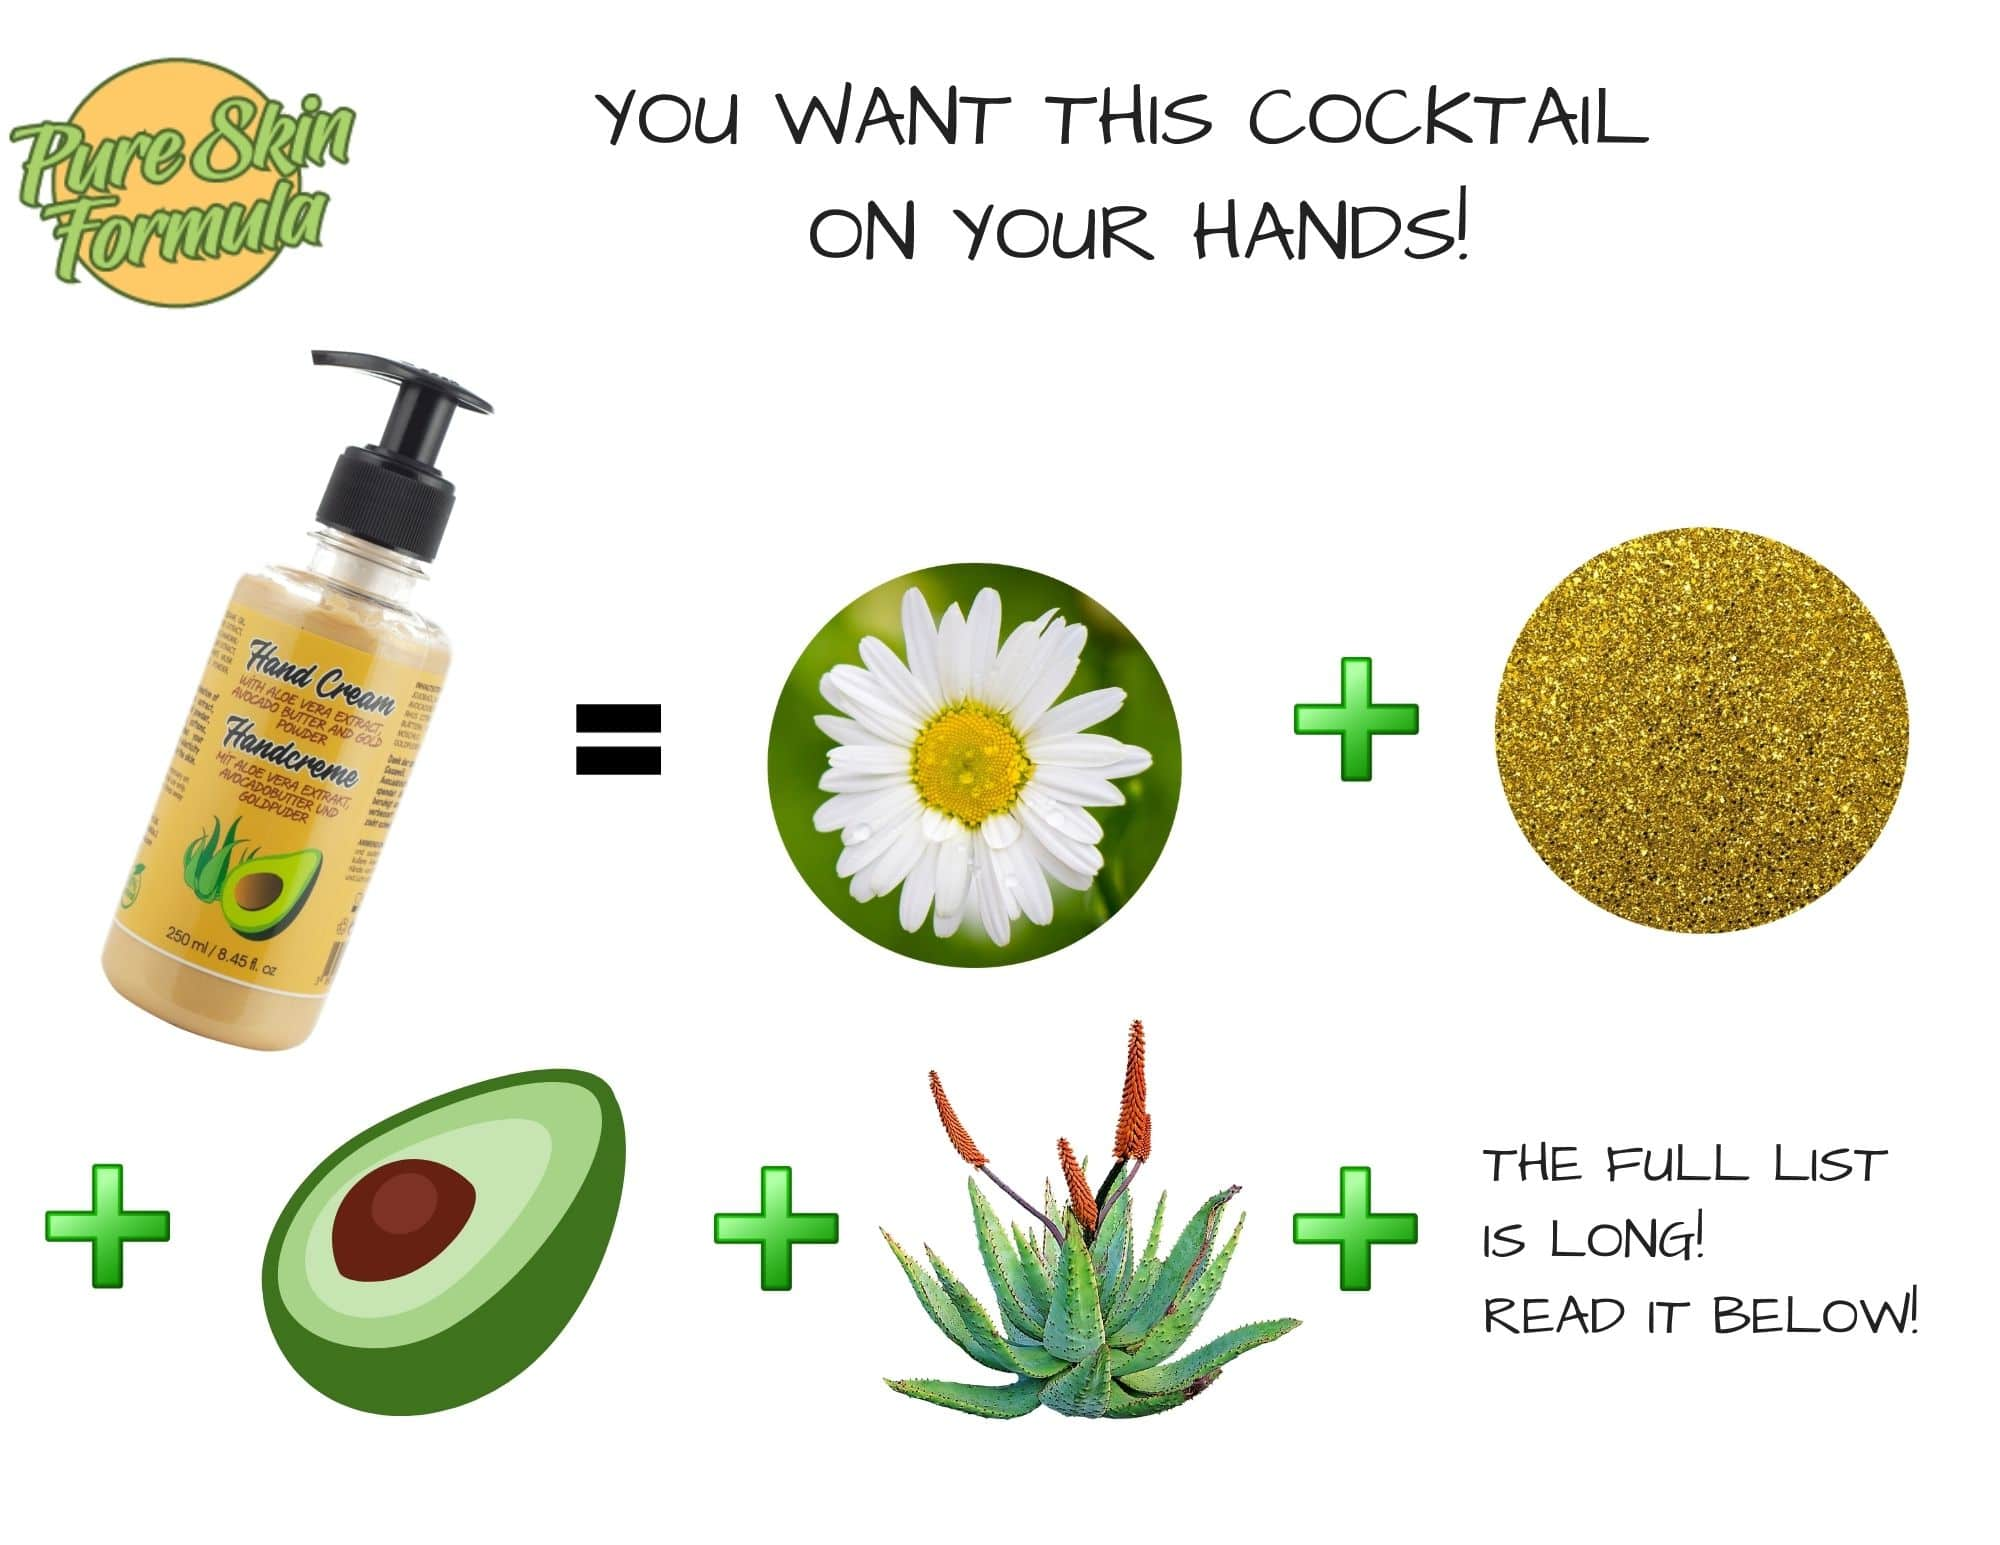 ingredients_hand cream with gold